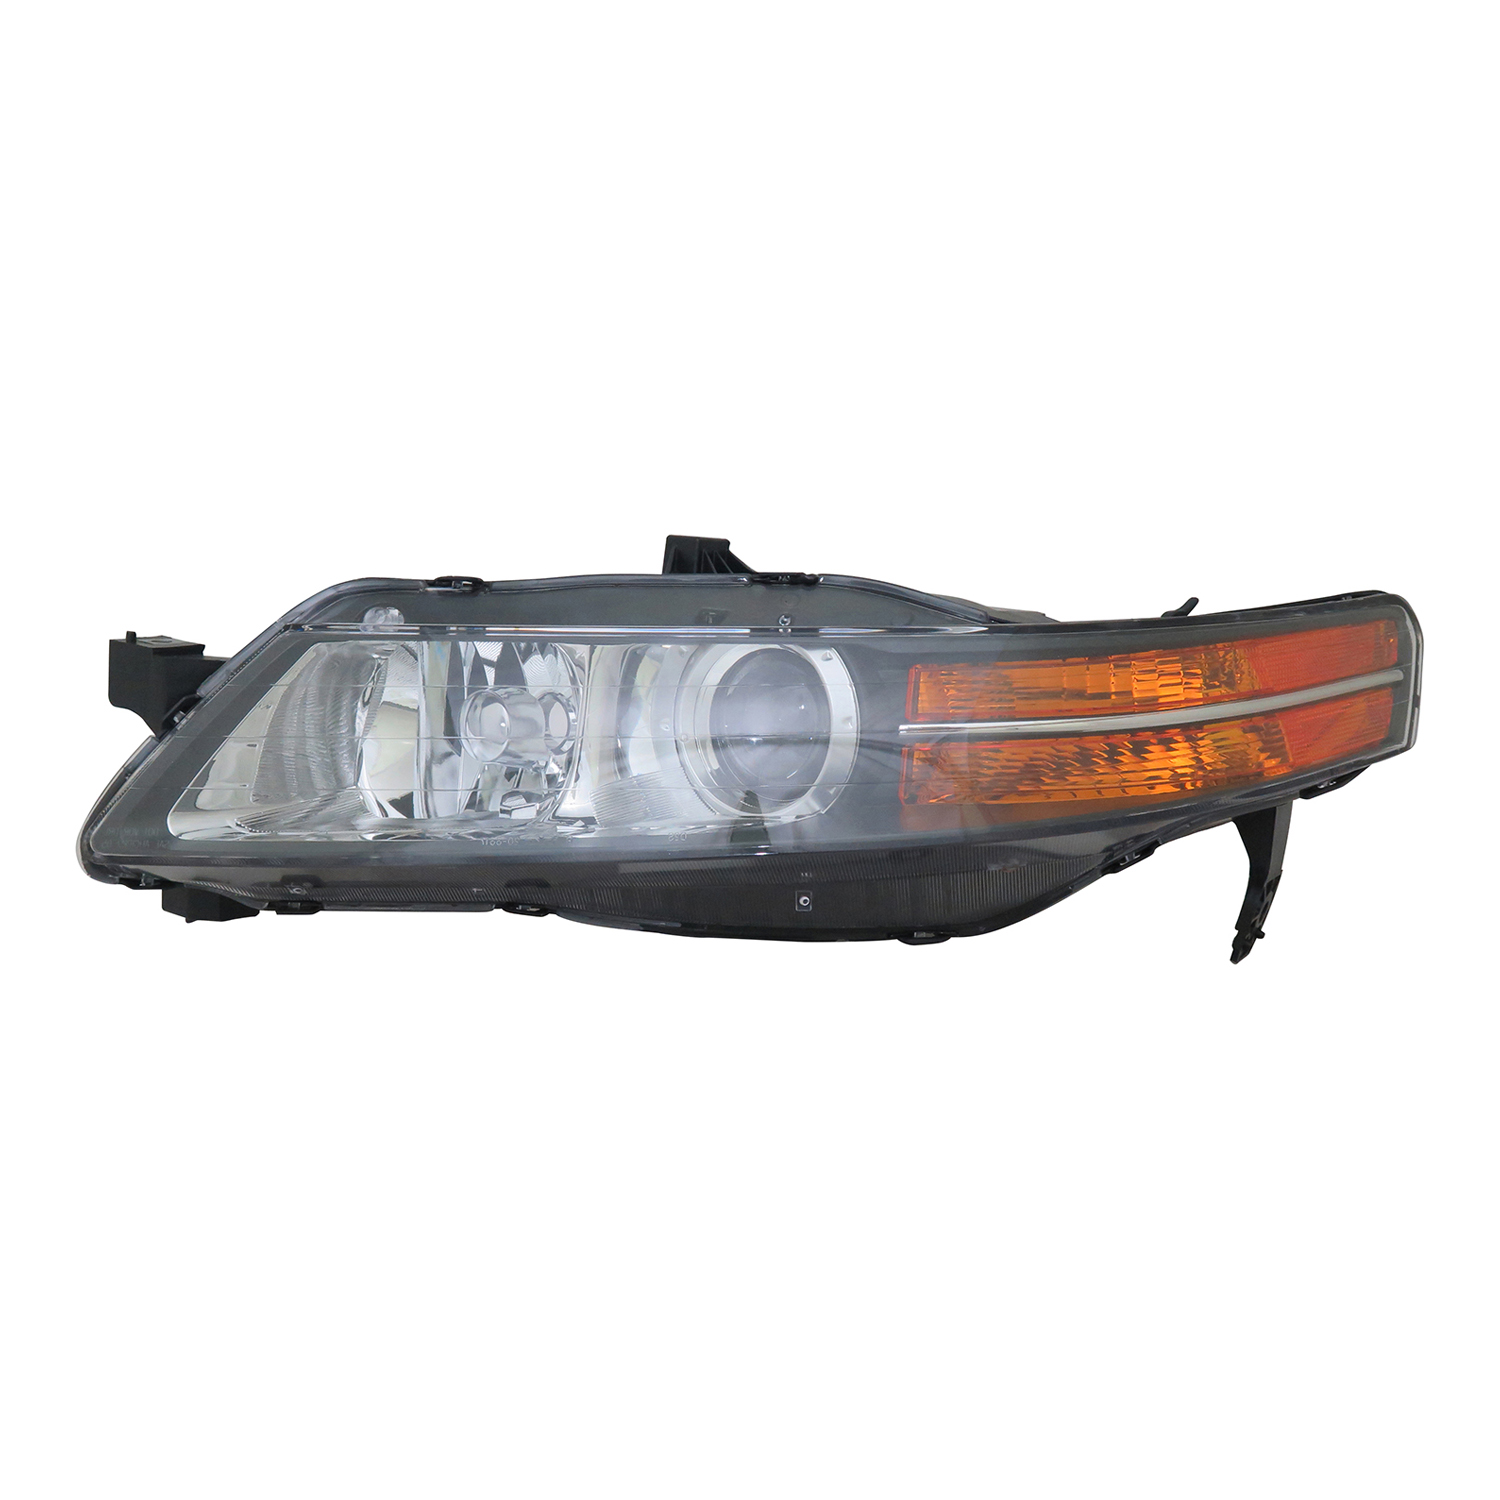 CPP AC2518109 NSF Left Headlamp Lens/Housing For 04-05